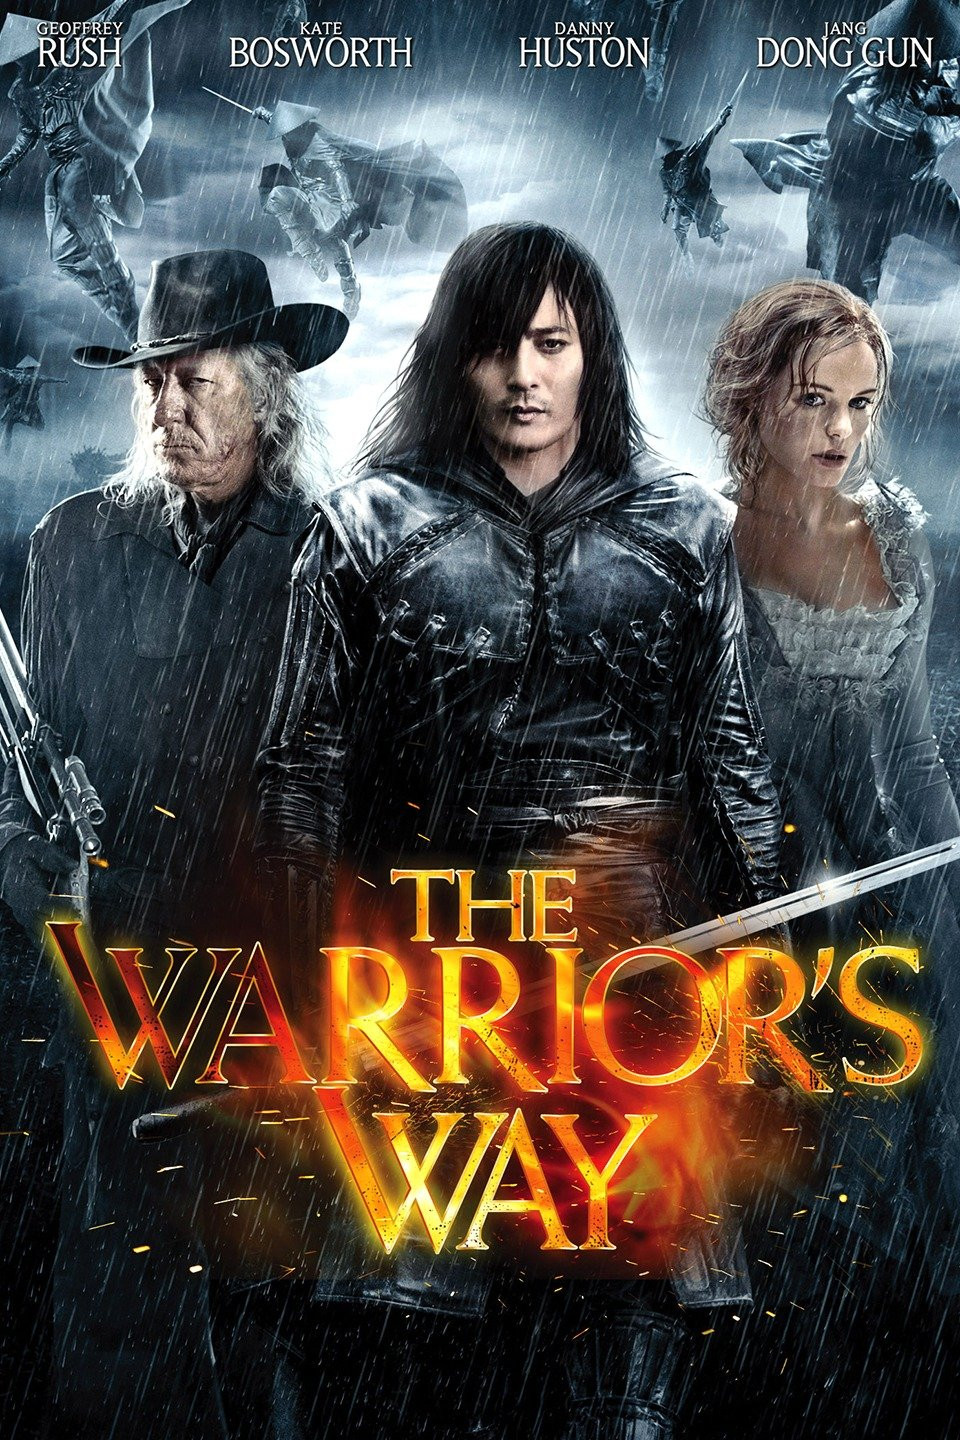 The Warriors Way 2010 Hindi Dual Audio 800MB BluRay ESub Download